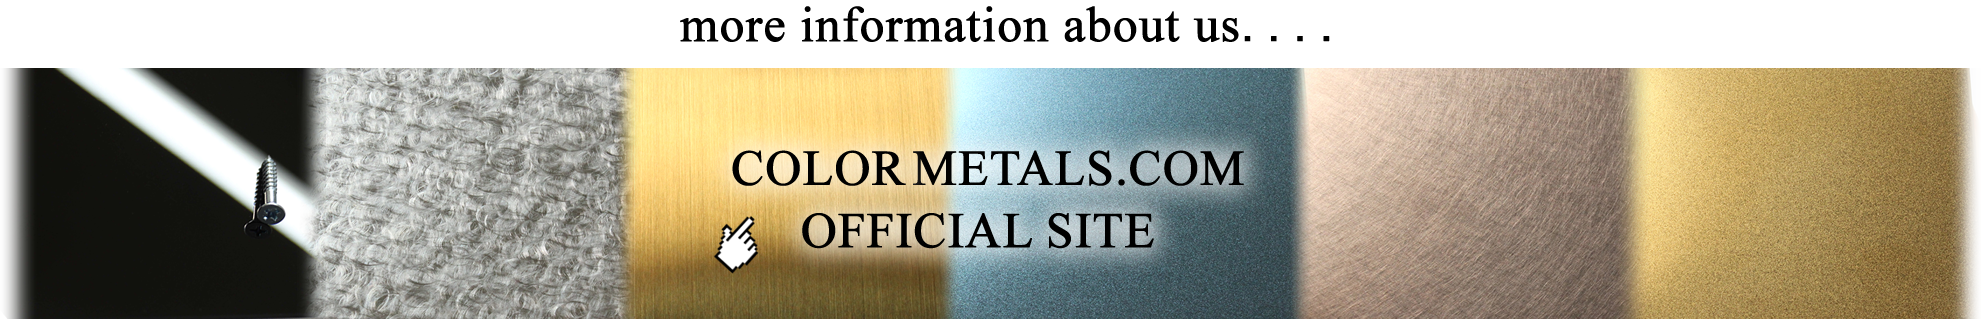 go to color-metals.com